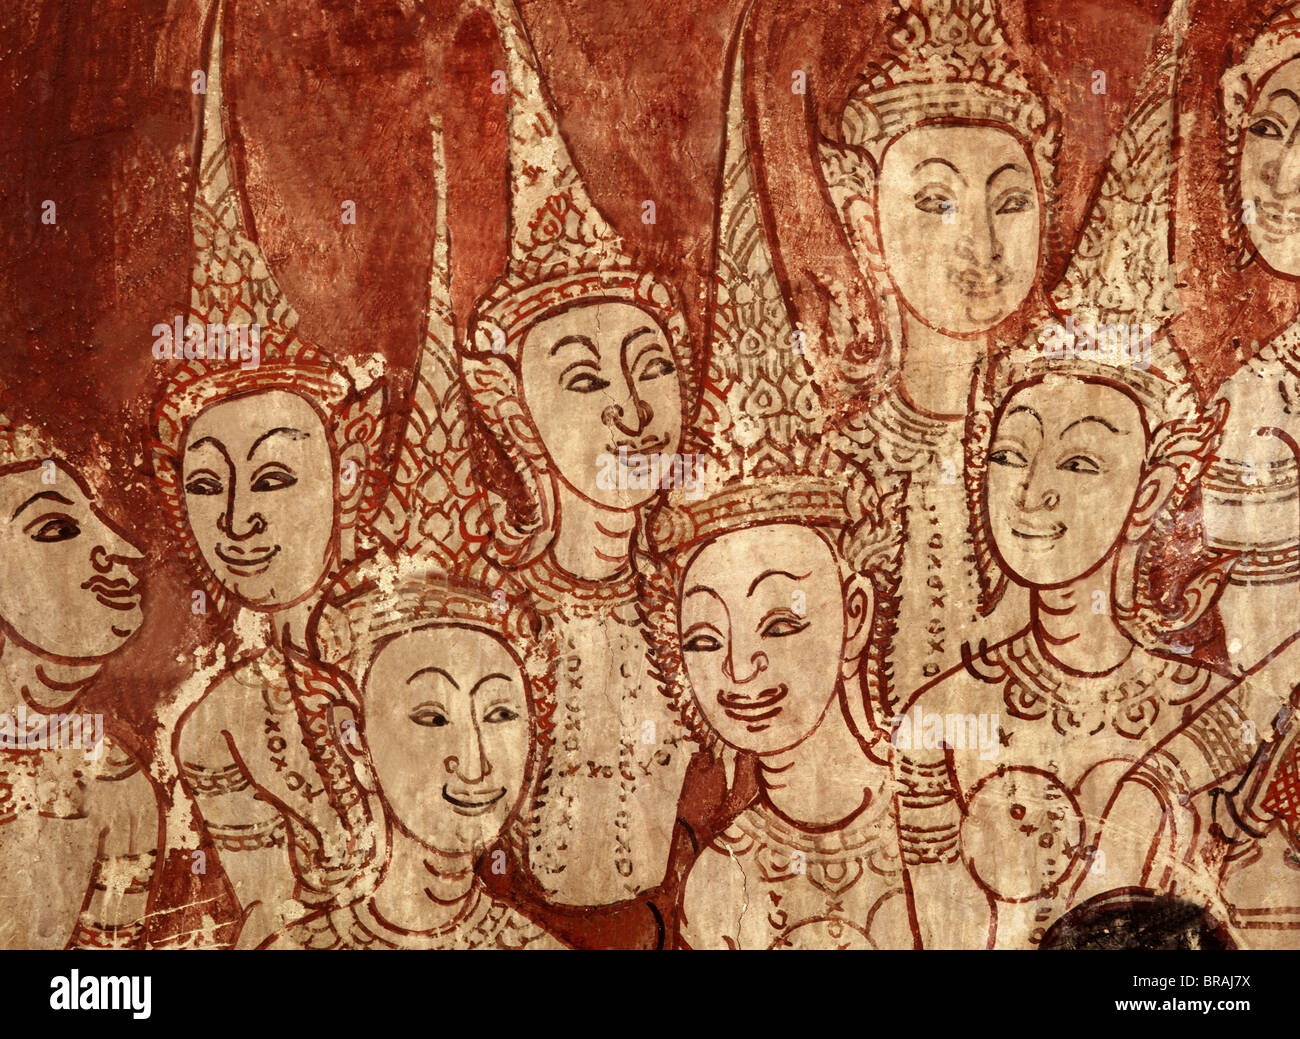 Celestial deities, detail of murals dating from the Ayutthaya period, Wat Chompoowek, Nonthaburi, Thailand, Southeast - Stock Image